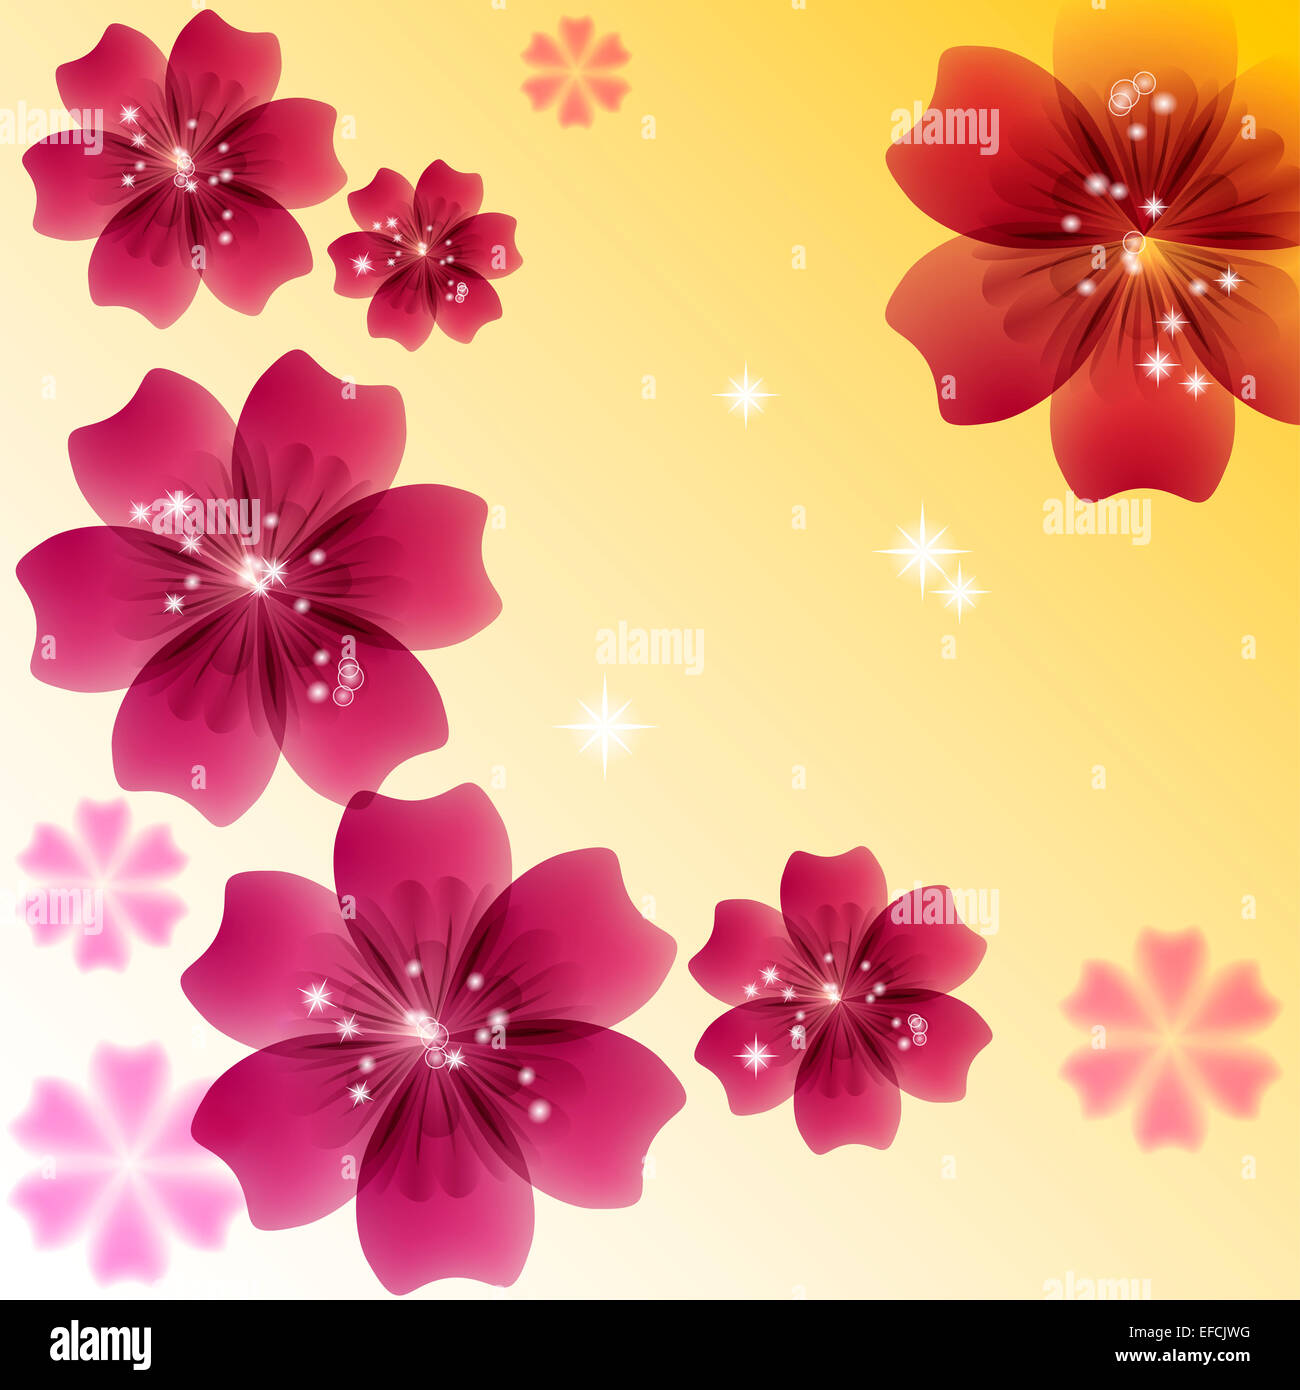 Wedding card or invitation with abstract floral background. - Stock Image